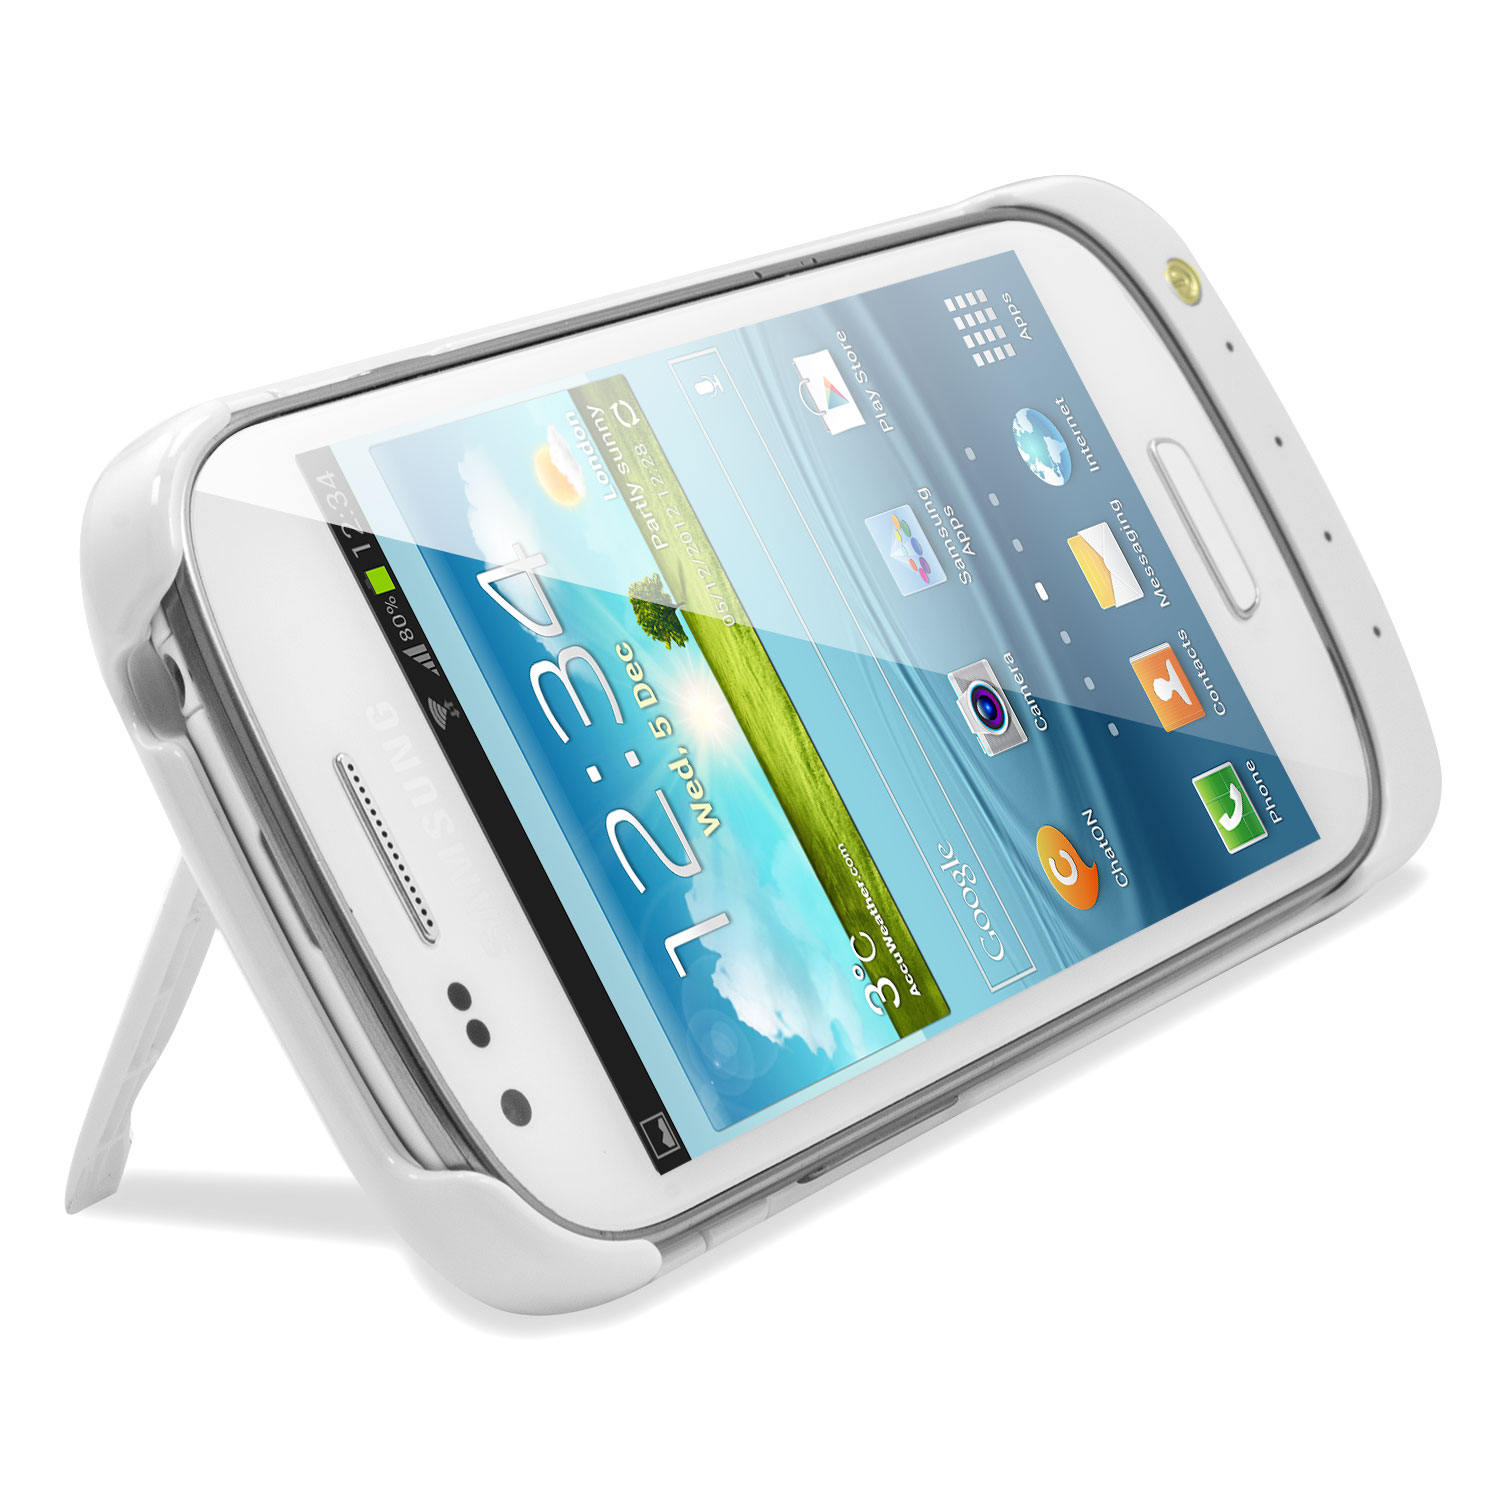 power jacket galaxy s3 mini akku h lle mit 2000 mah in. Black Bedroom Furniture Sets. Home Design Ideas